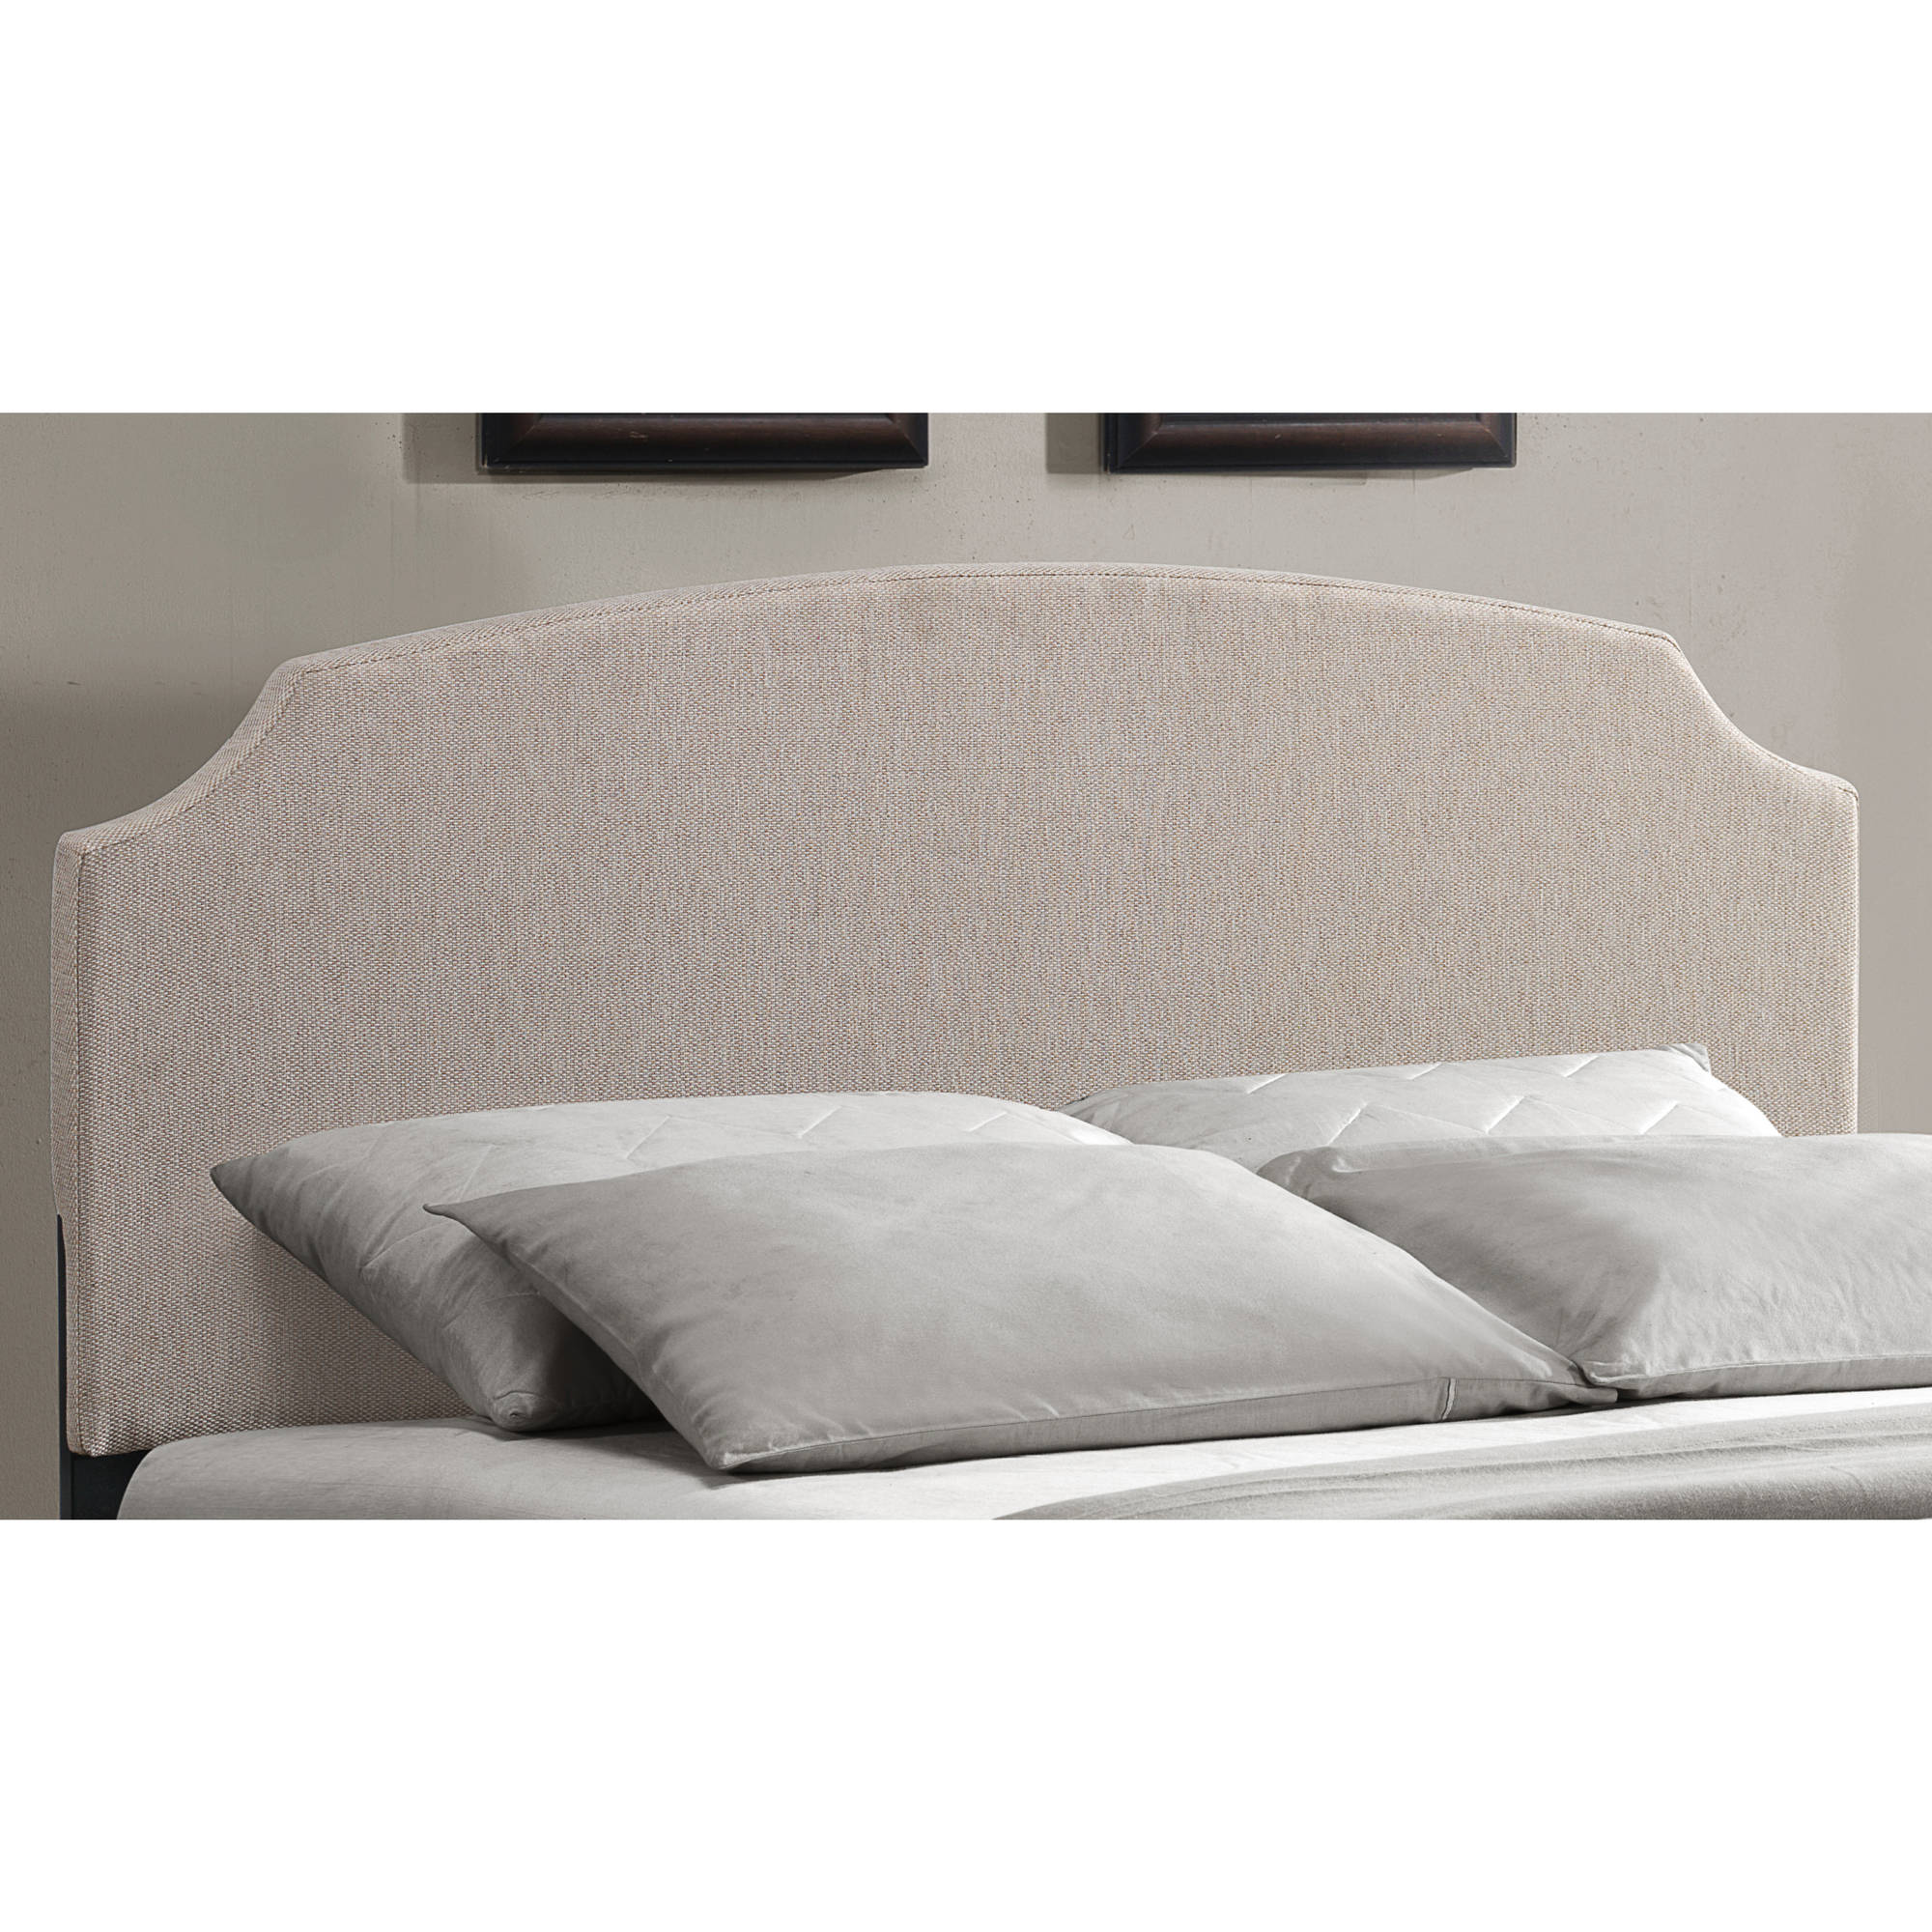 Hillsdale Furniture Lawler Queen Headboard, Cream Fabric